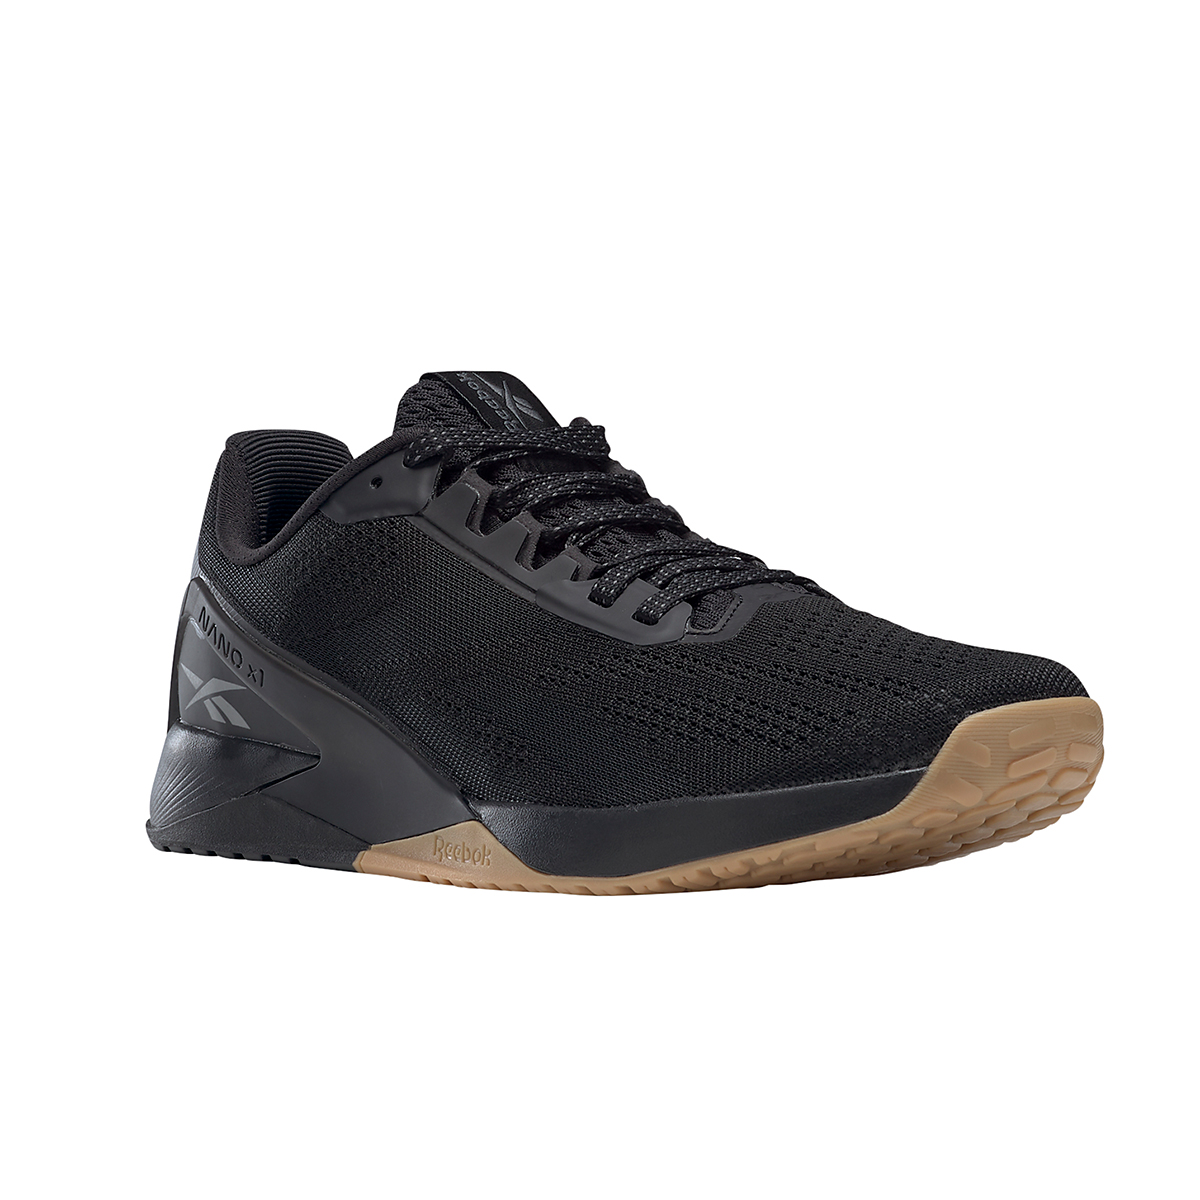 Men's Reebok Nano X1 Training Shoe - Color: Black/Night Black/Rubber Gum - Size: 6.5 - Width: Regular, Black/Night Black/Rubber Gum, large, image 2